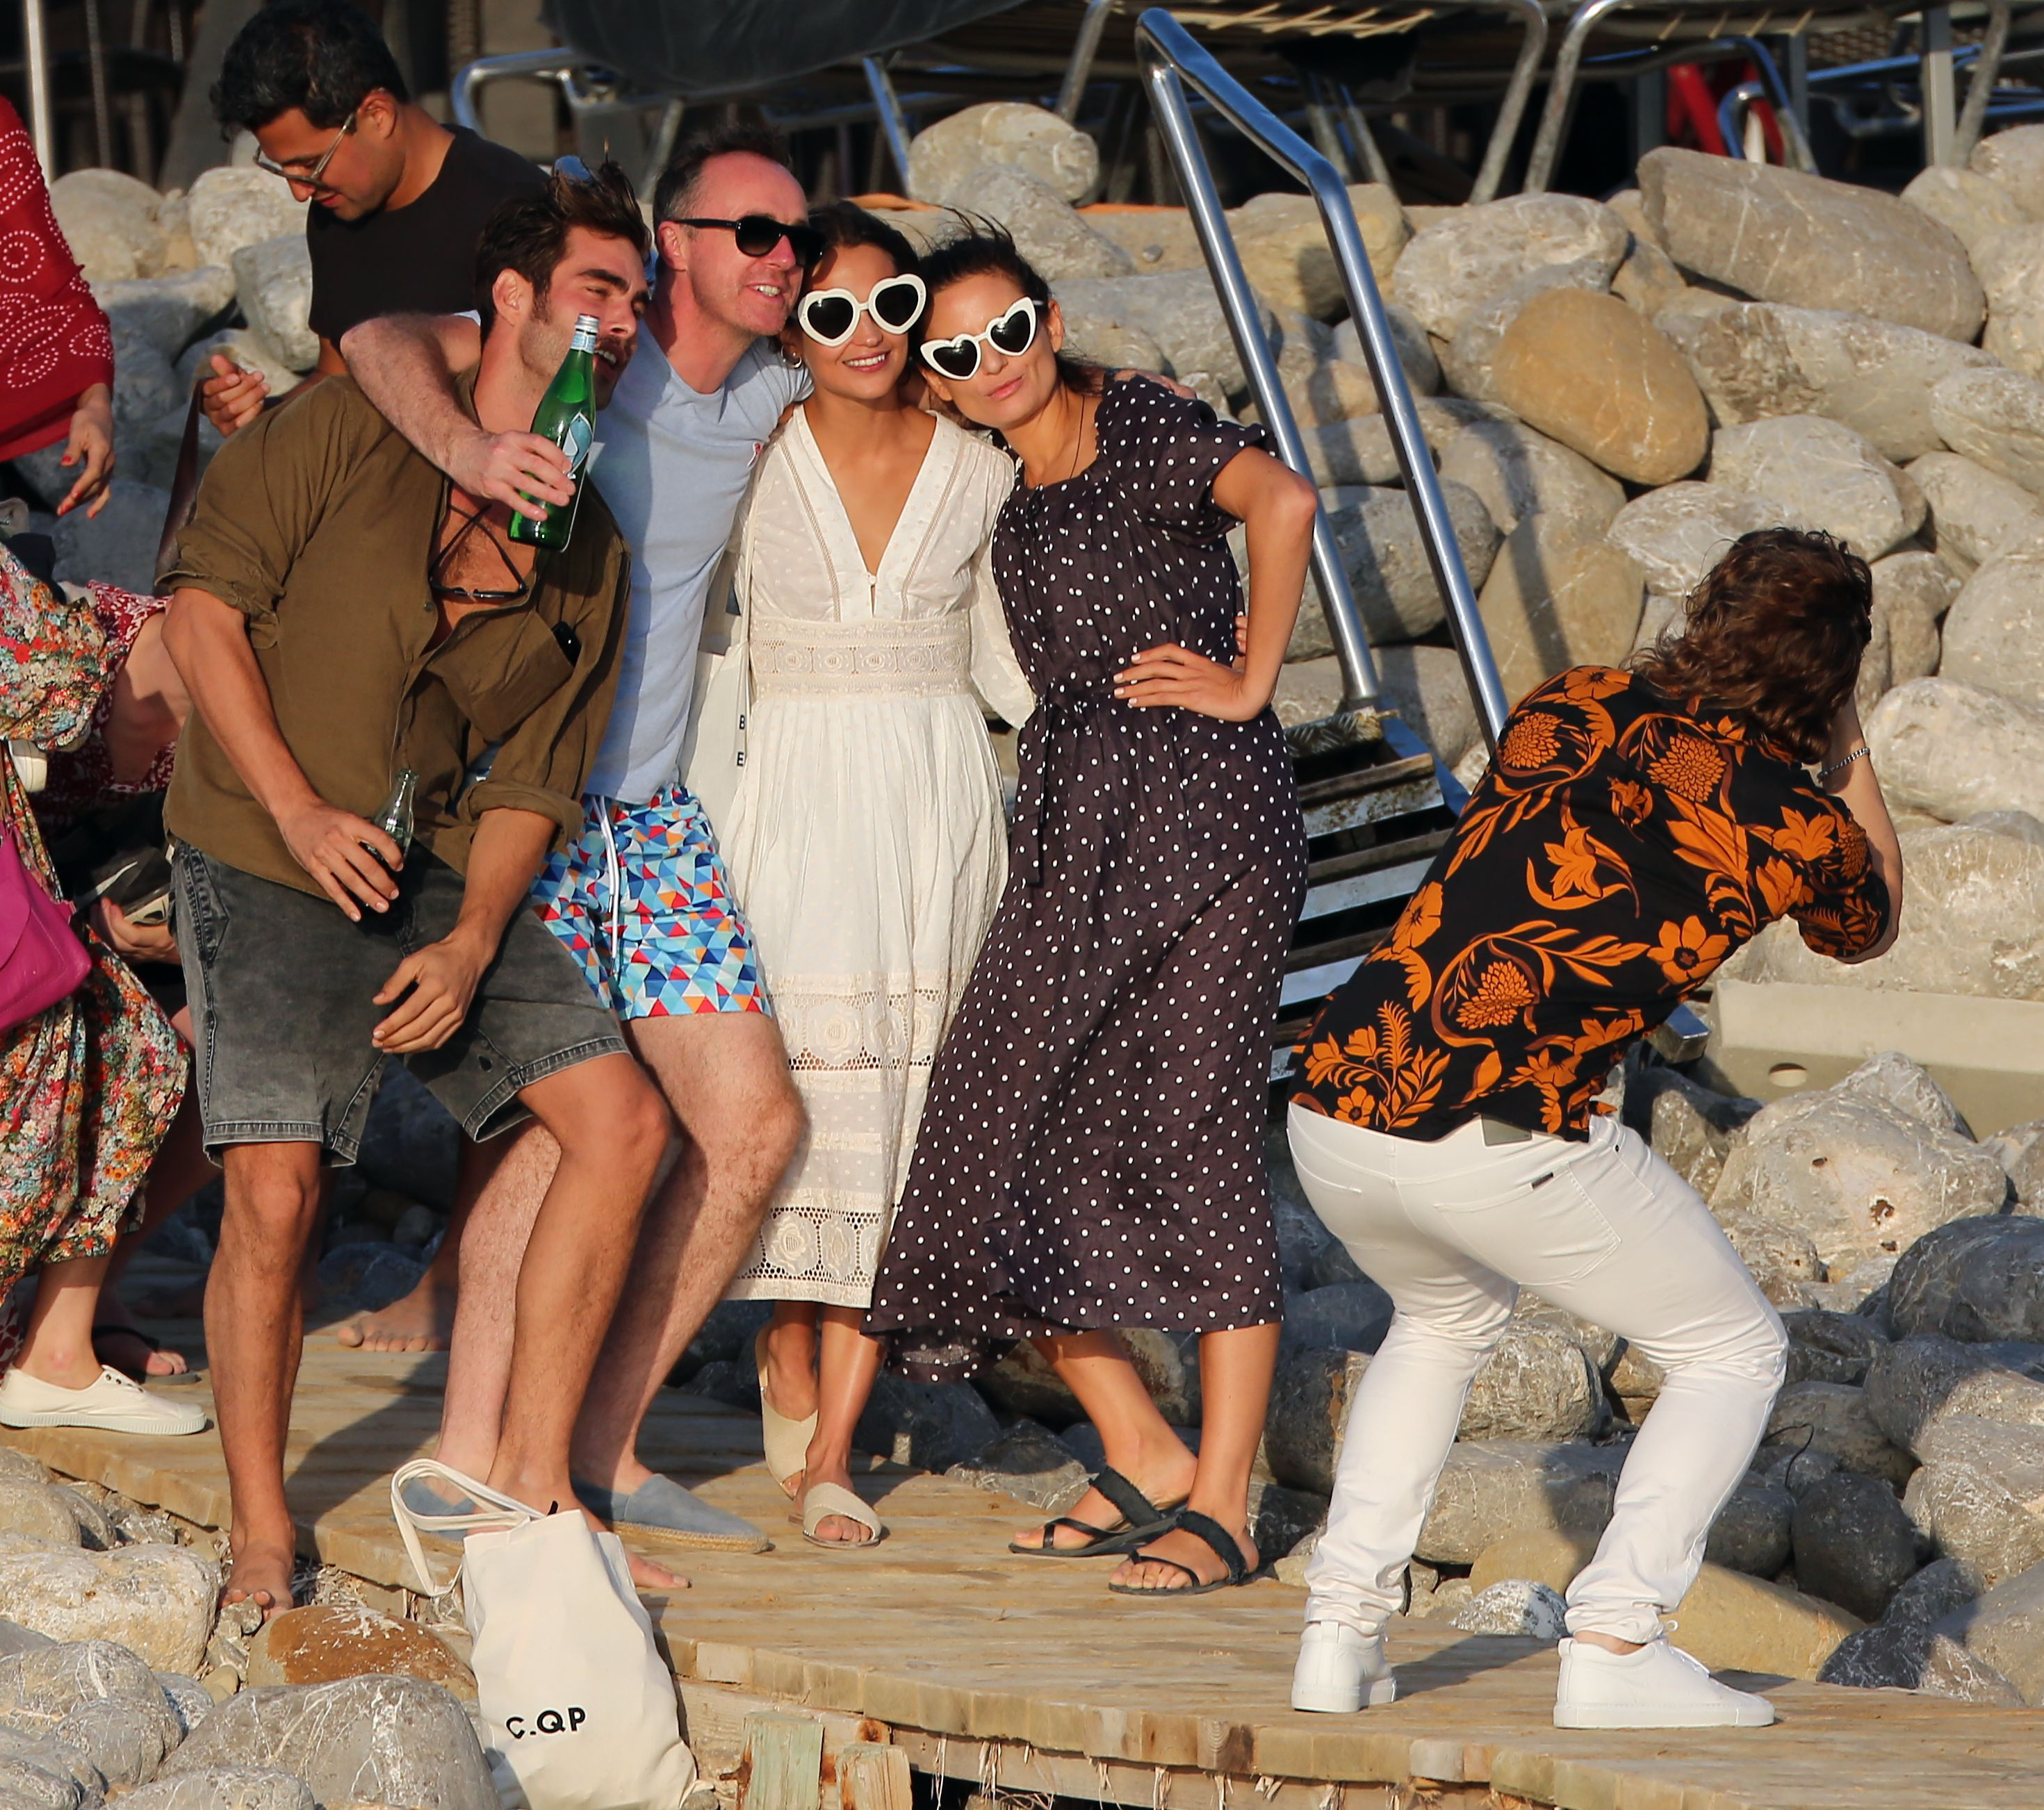 Surprise! Michael Fassbender and Alicia Vikander Marry in Ibiza